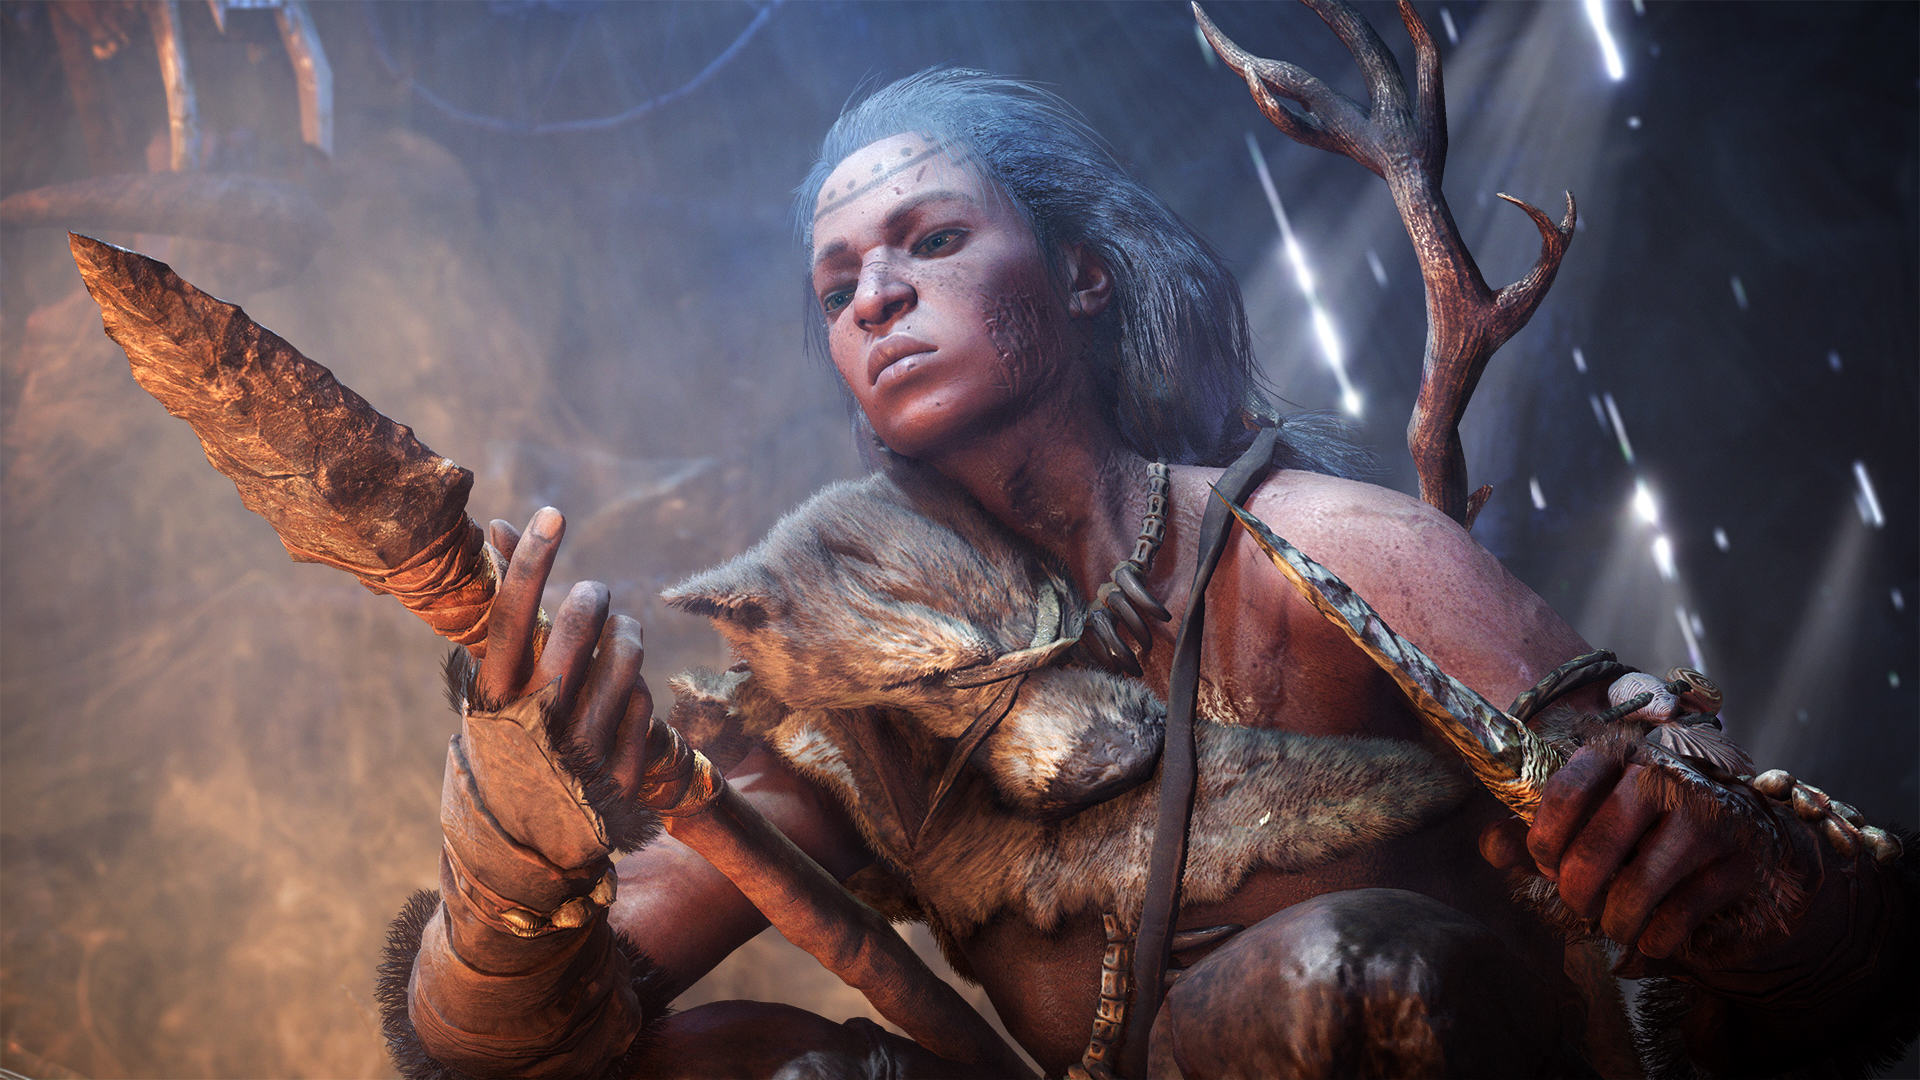 FCP 01  Hunter  Screenshots PREVIEW PR 160126 6pm CET 1453716676 An Exclusive Look At Far Cry Primal Ahead Of Release Day